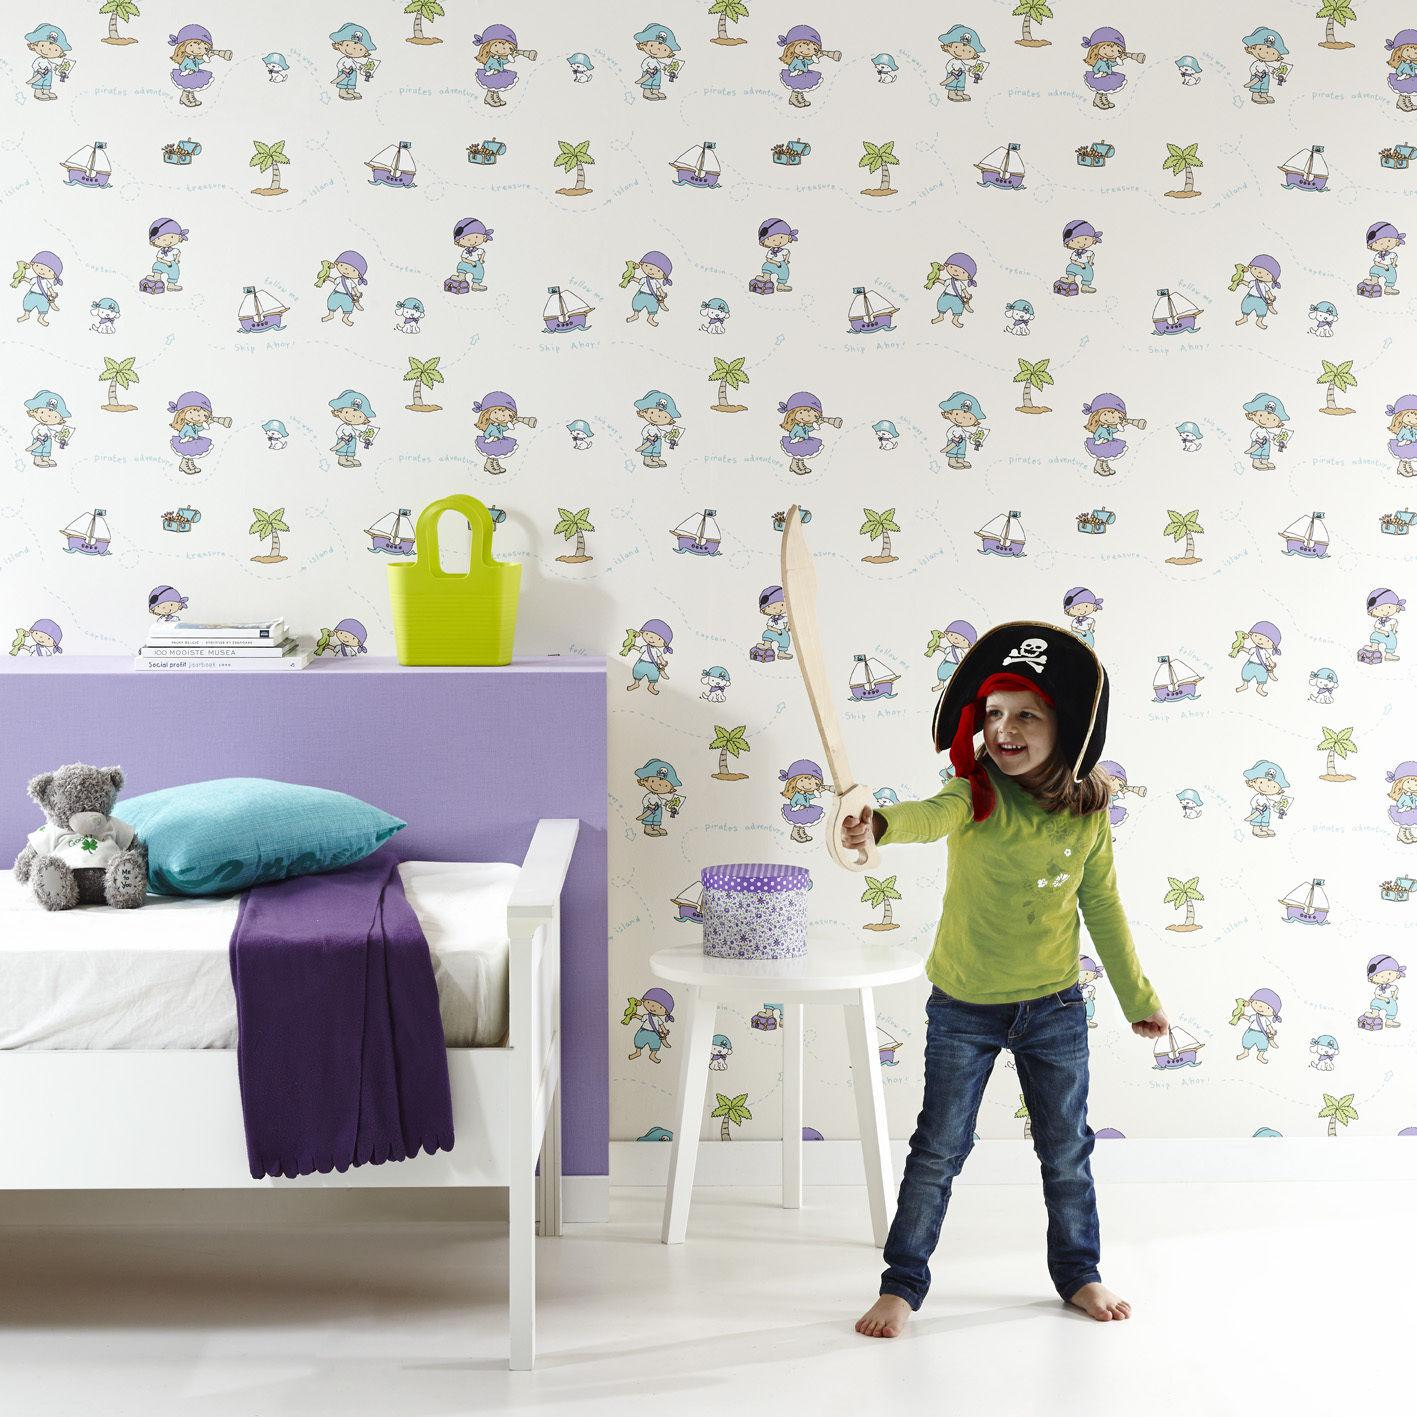 vlies tapete piraten kinder zimmer schiff insel schatzkiste blau kinderzimmer kaufen bei. Black Bedroom Furniture Sets. Home Design Ideas